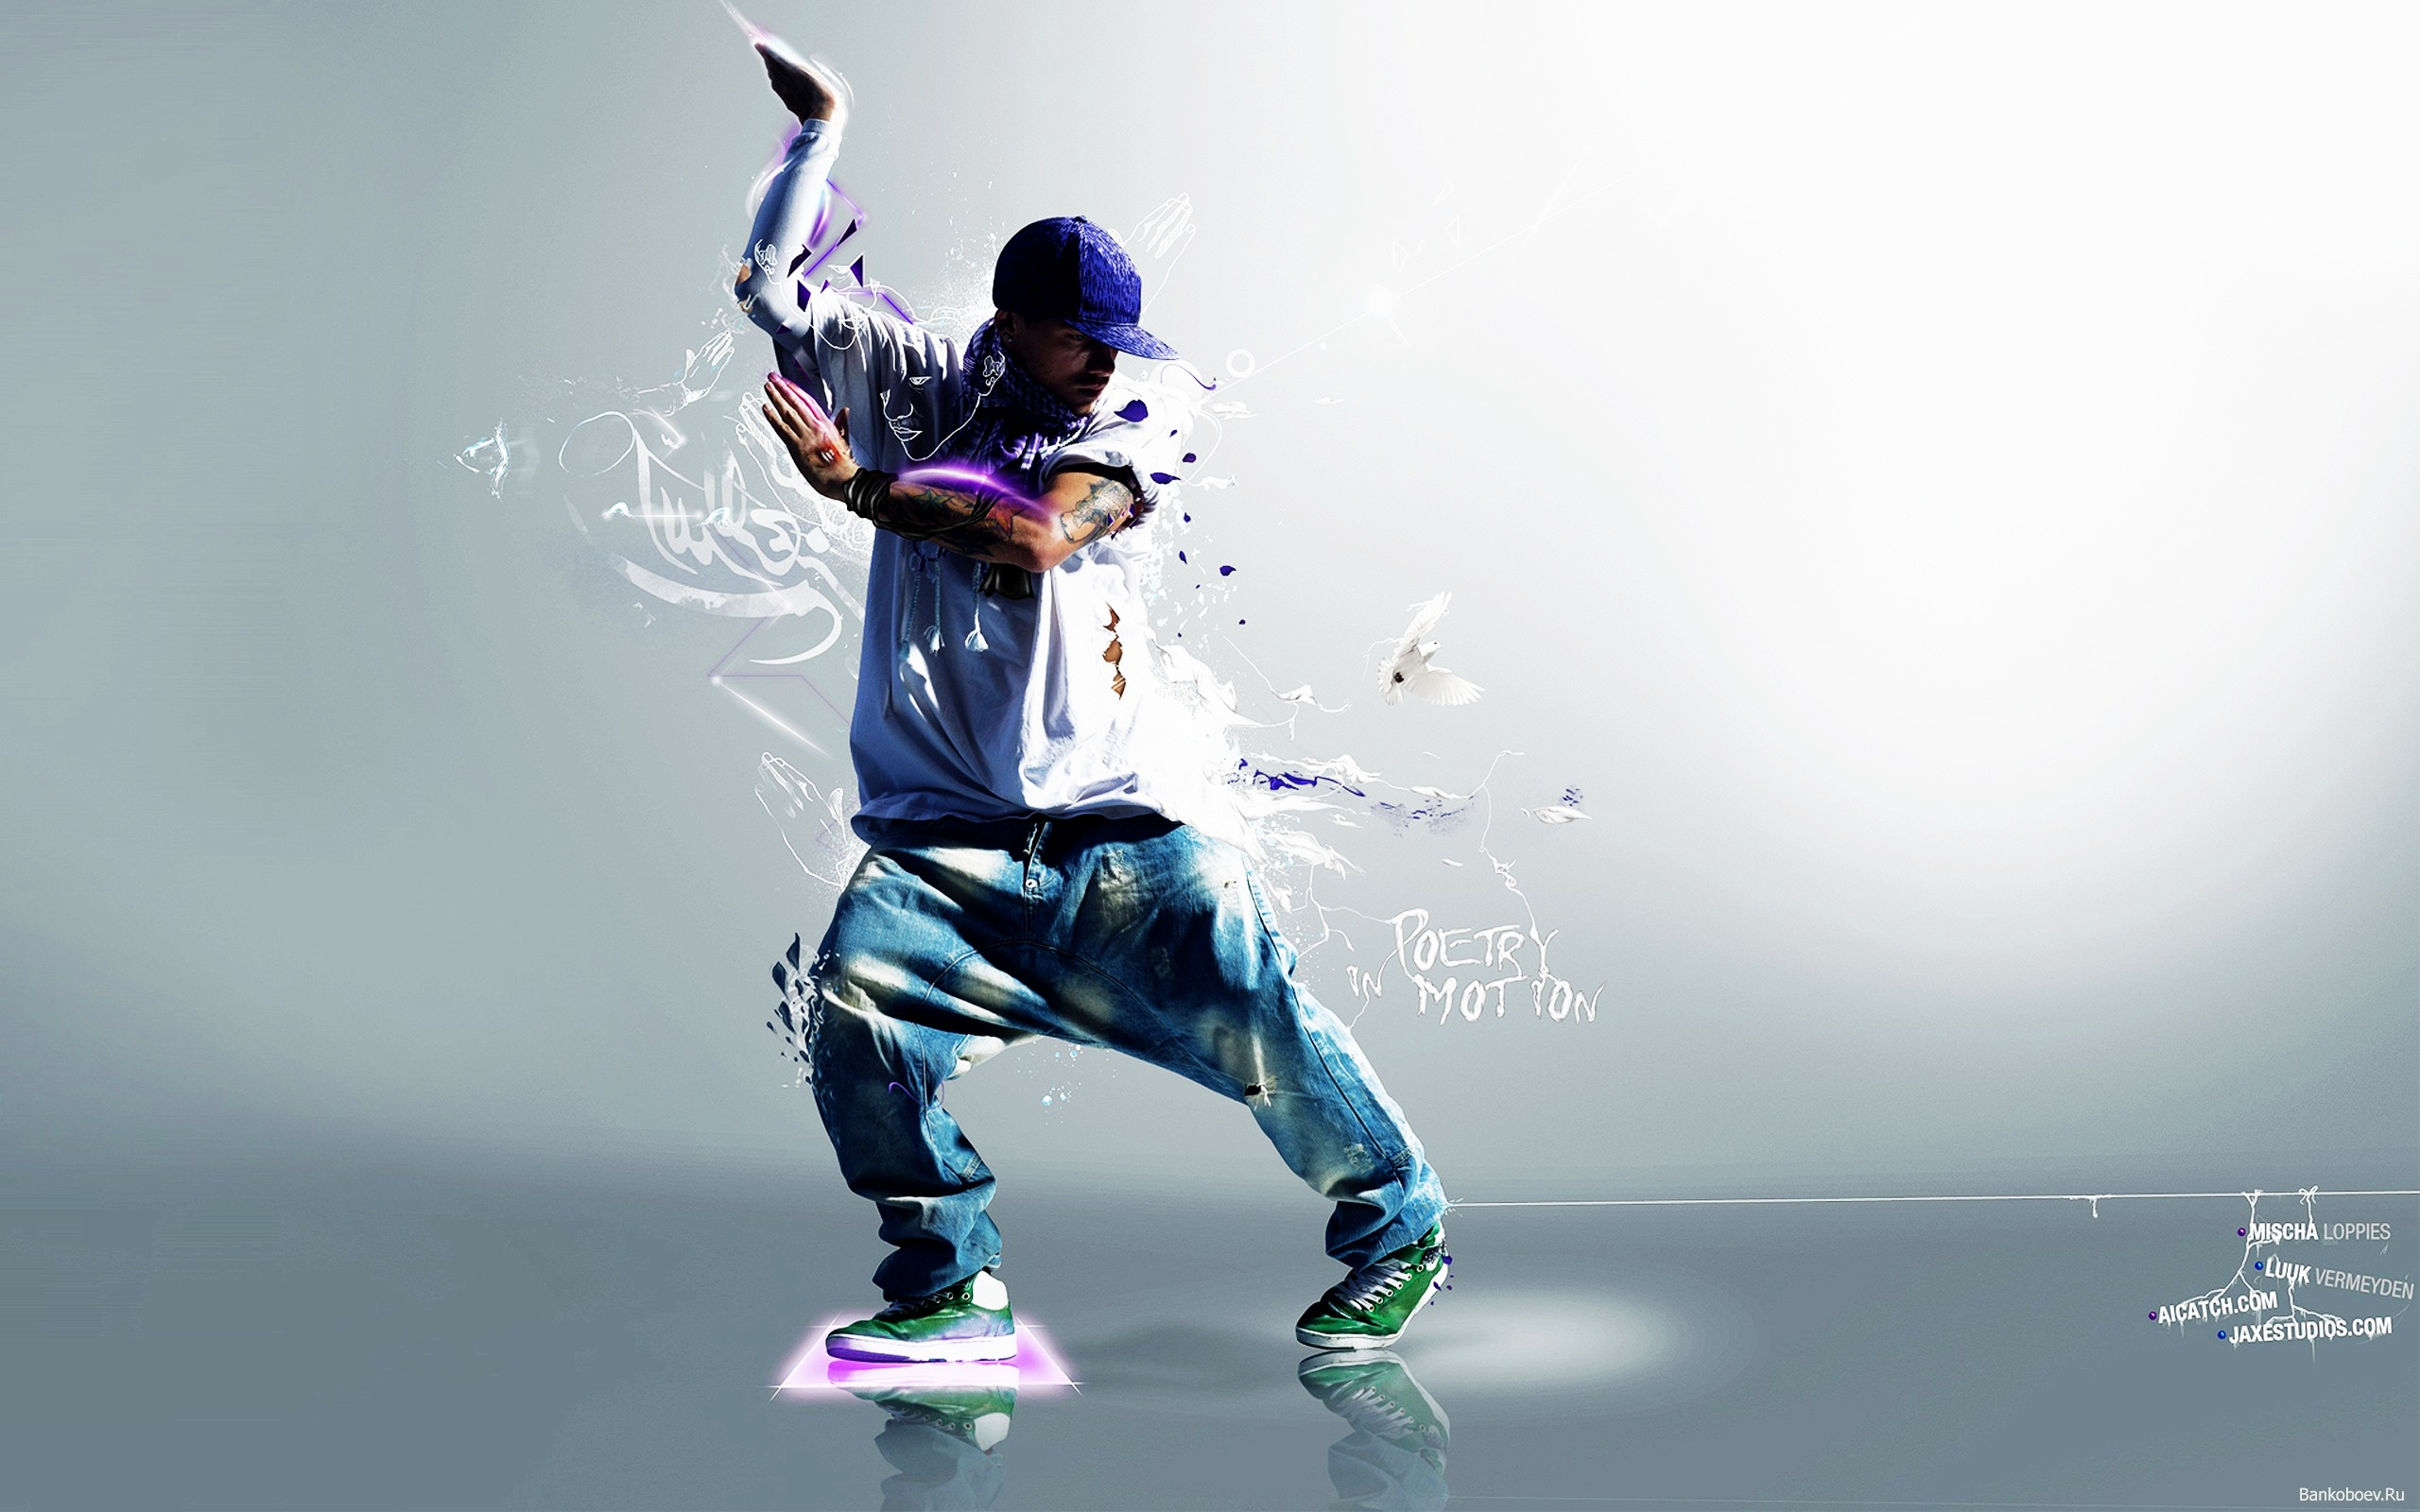 Photo credit: www.hiphophdwallpapers.com